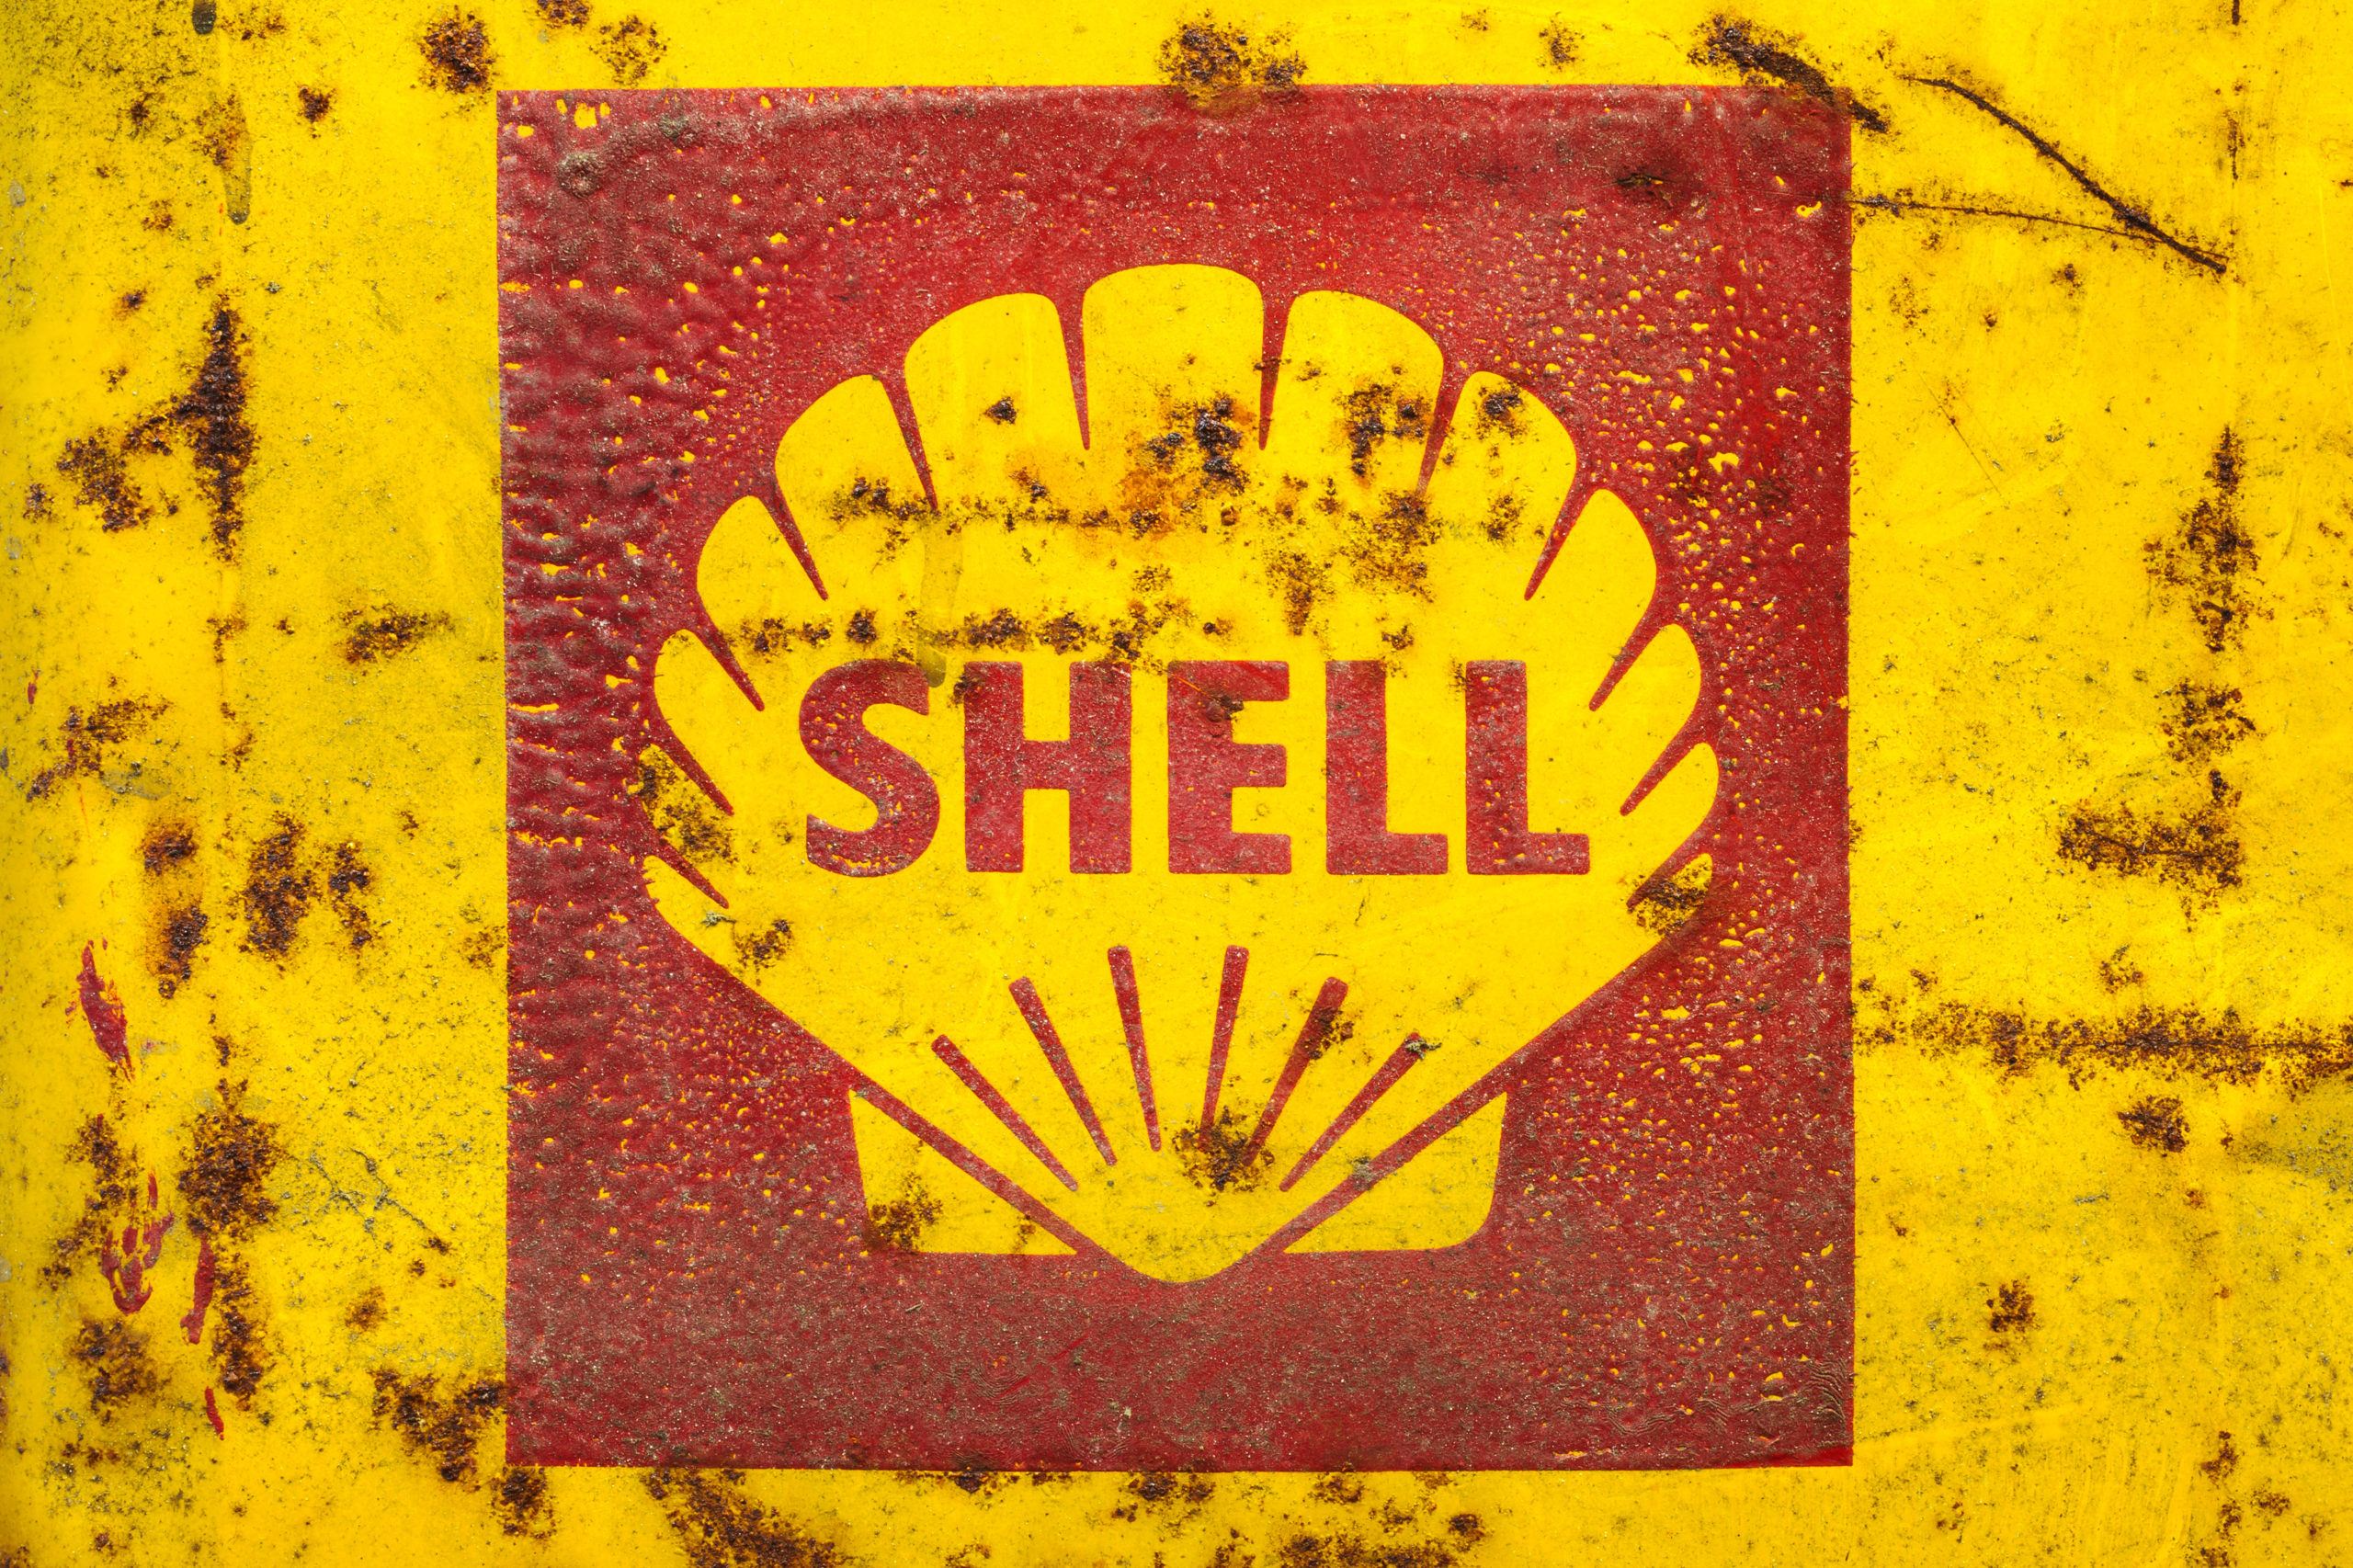 Vintage emblem of the Shell Oil Company